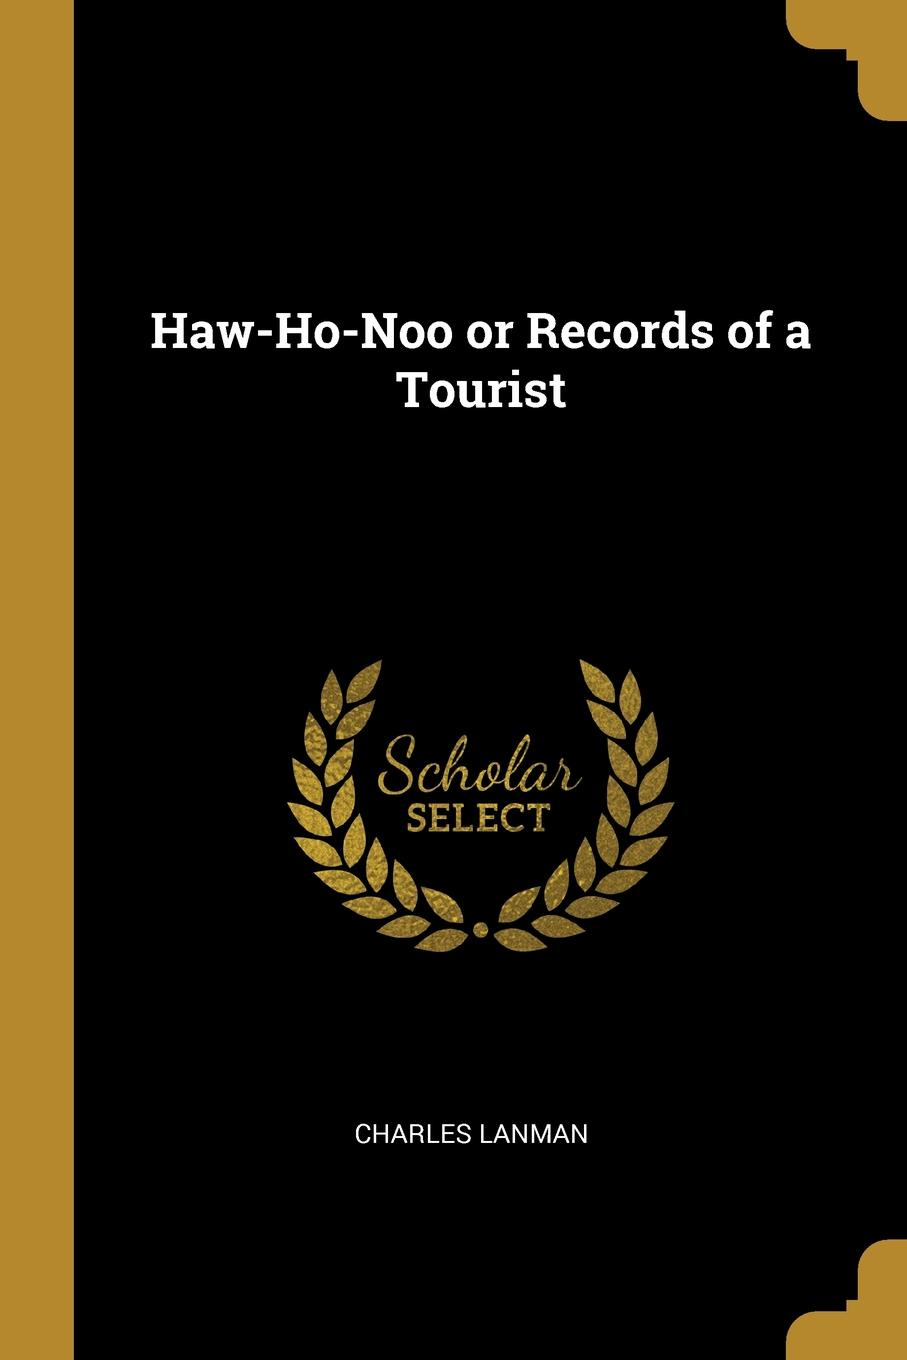 Charles Lanman. Haw-Ho-Noo or Records of a Tourist